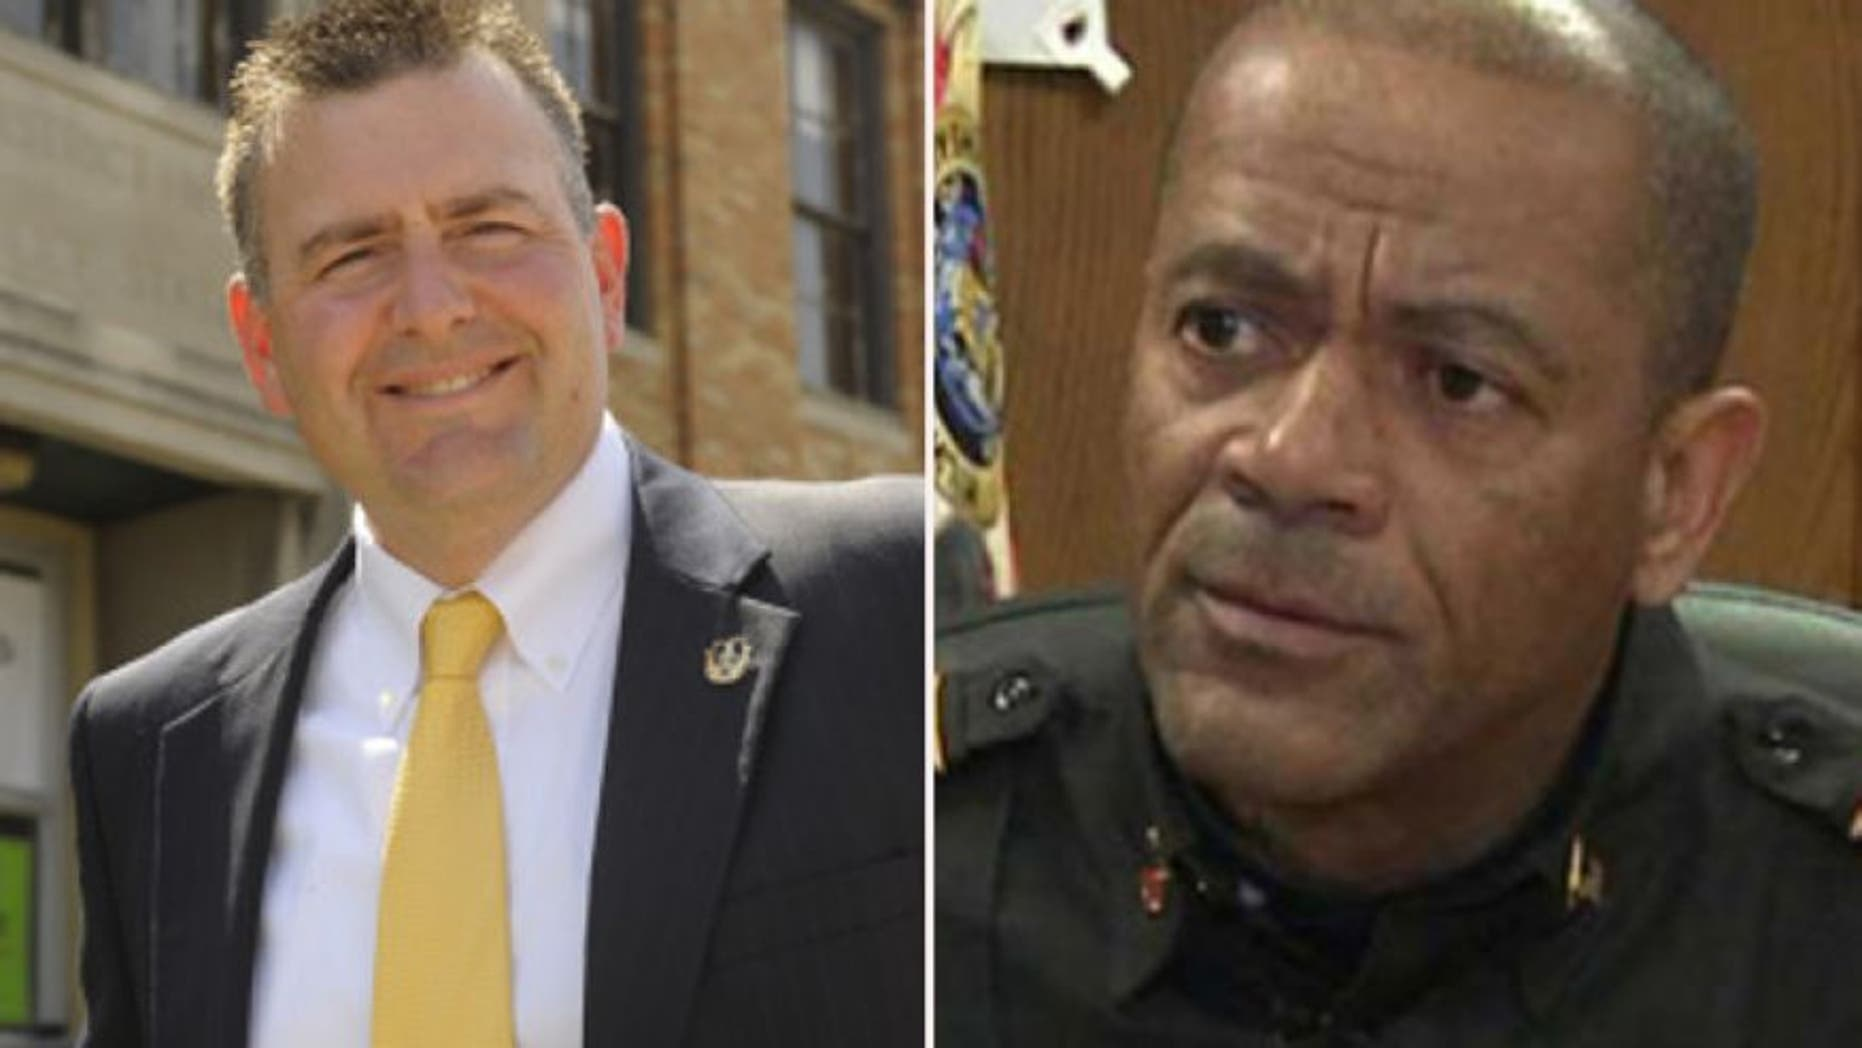 According to results from Fox6Now.com, Milwaukee County Sheriff David Clarke Jr., right, defeated longtime Milwaukee Police Lt. Chris Moews, left, in a Democratic primary that garnered national attention.  (Campaign photos via Fox6Now.com)